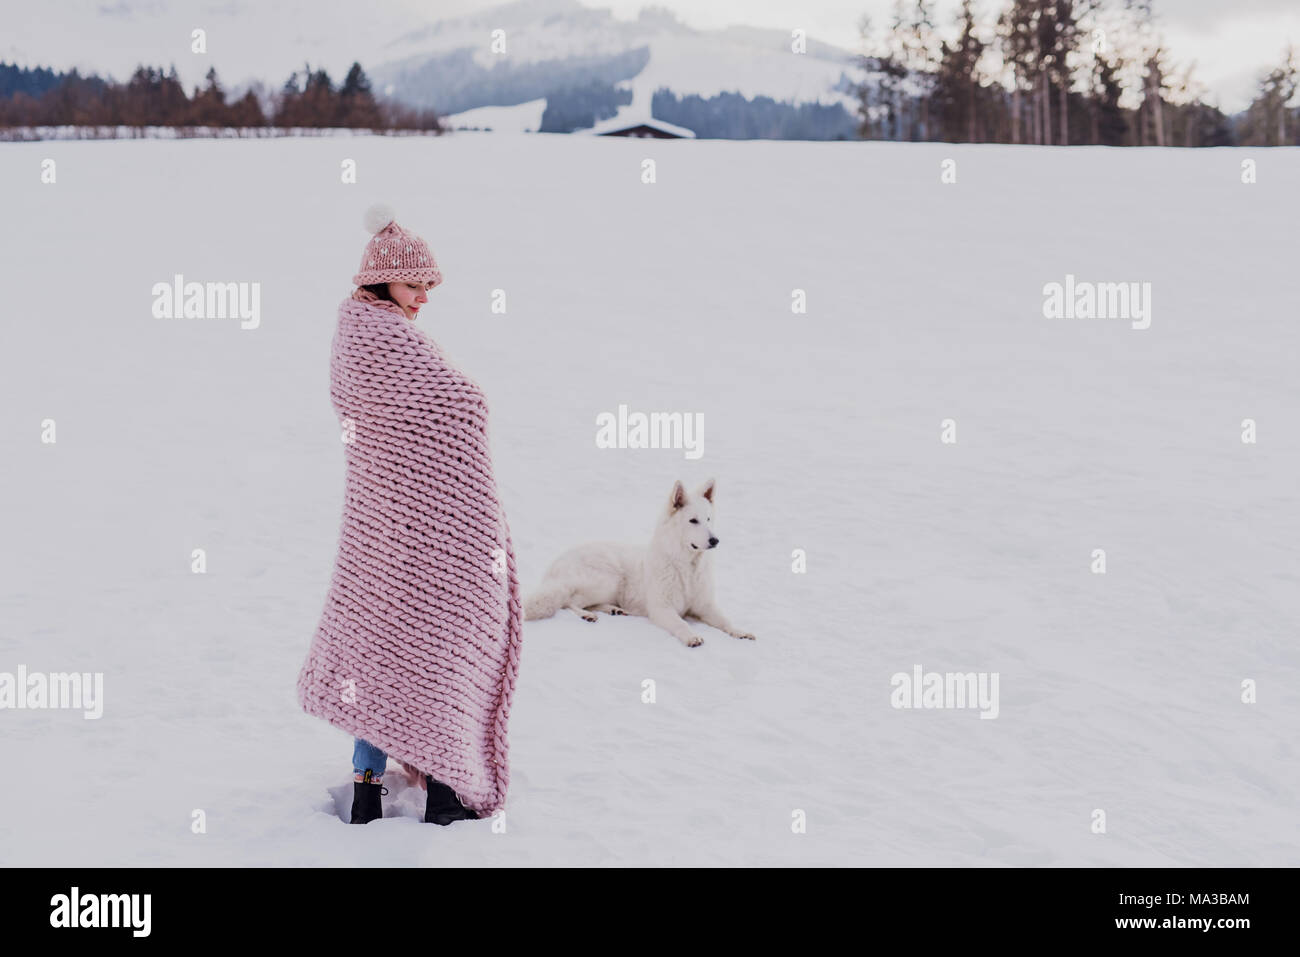 young woman stands wrapped in a pink blanket in a winter landscape,dog lies next to her in the snow, - Stock Image